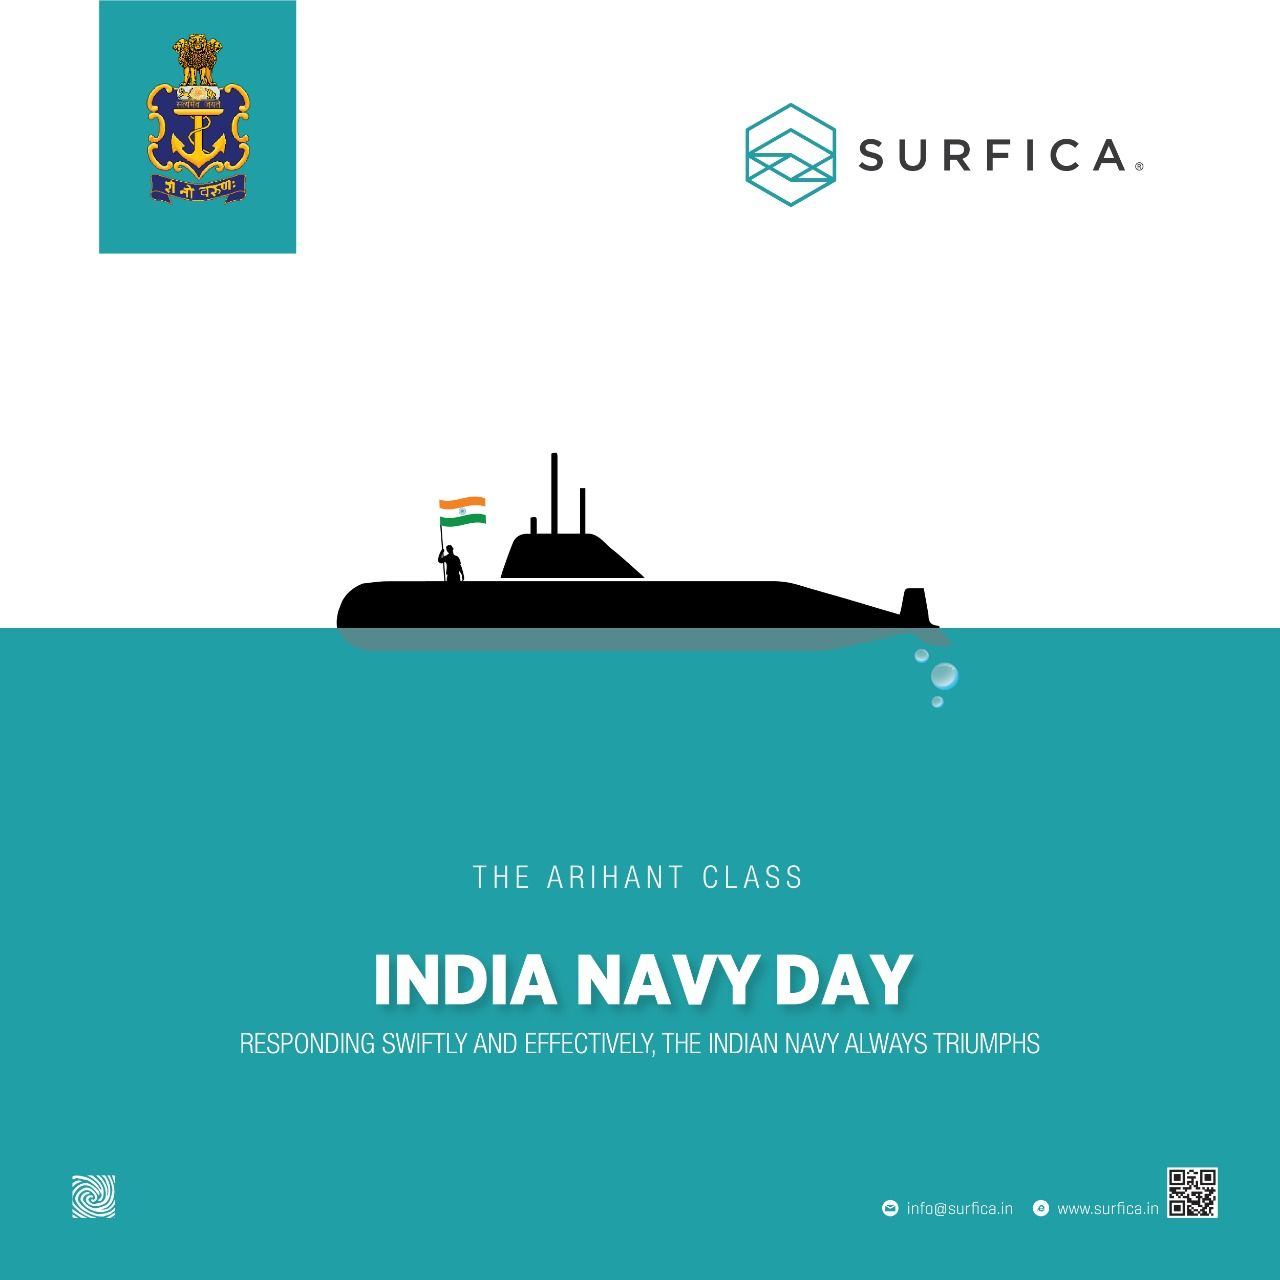 Responding Swiftly And Effectively The Indian Navy Always Triumphs Navy Day Of India Surfica Laminates Luxury Desi Navy Day Indian Navy Day Indian Navy